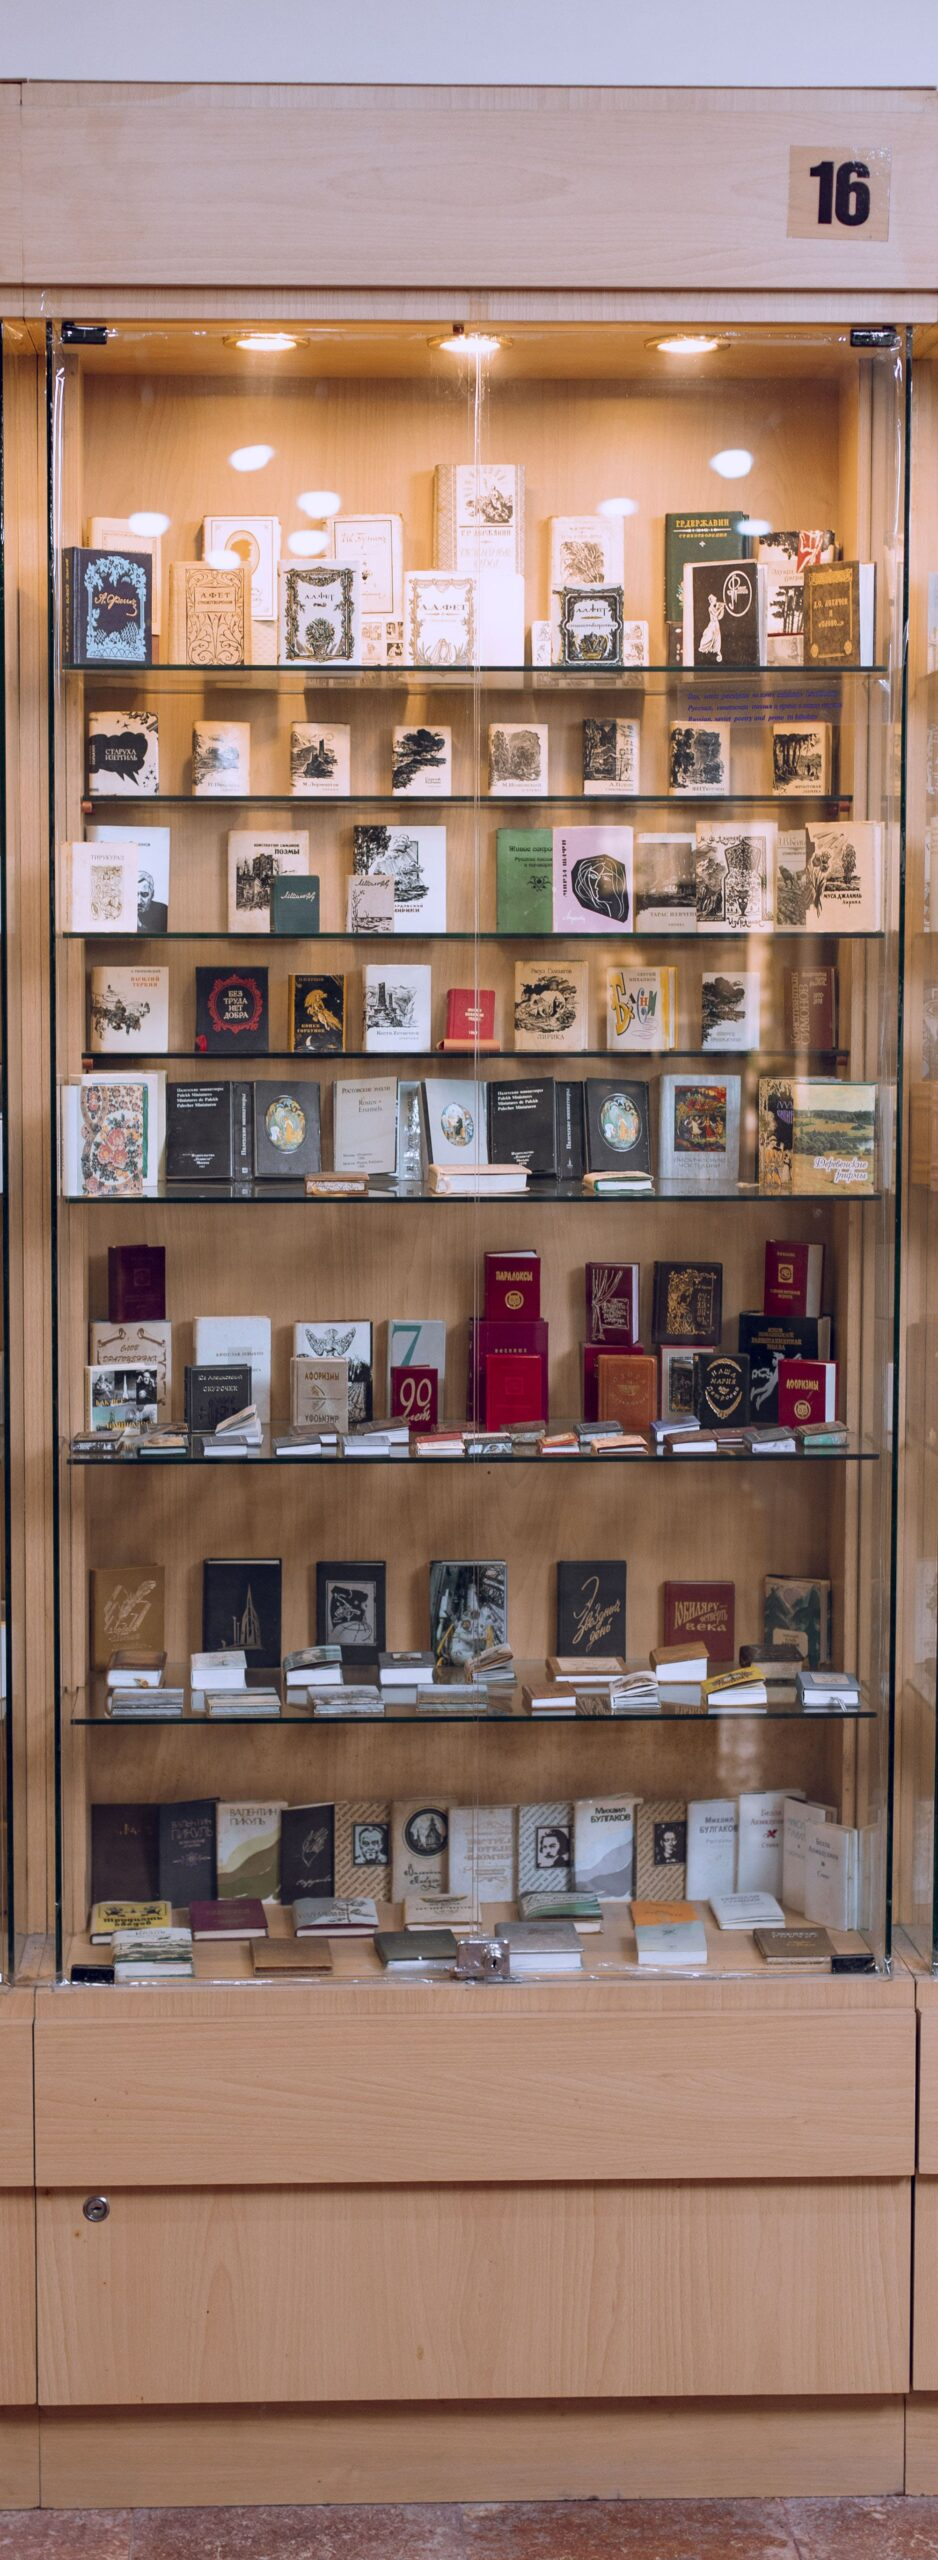 Museum of Miniature Books